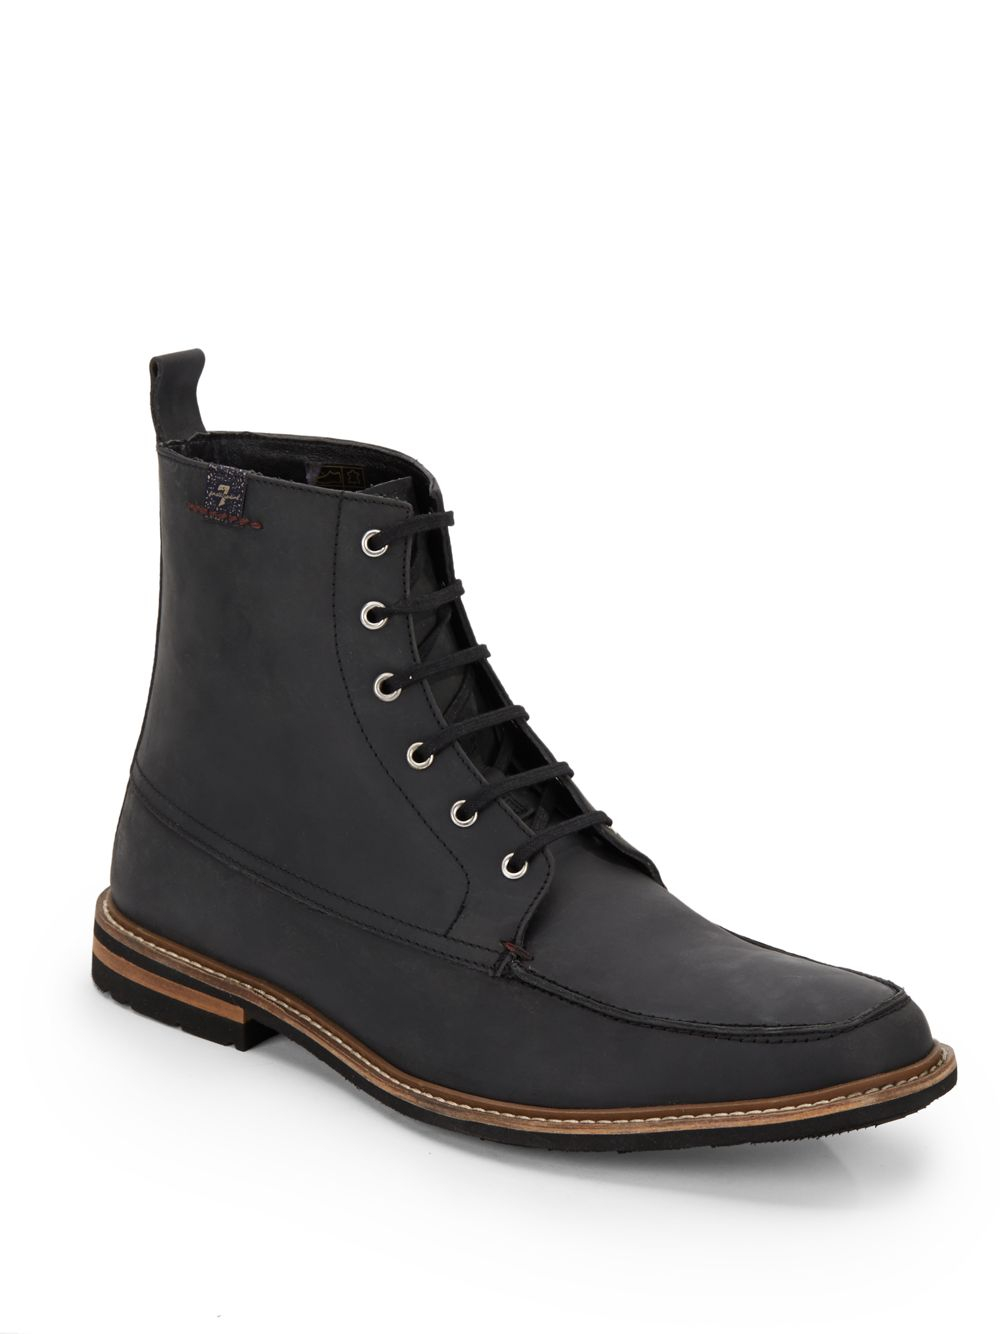 7 for all mankind cassius leather boots in black for